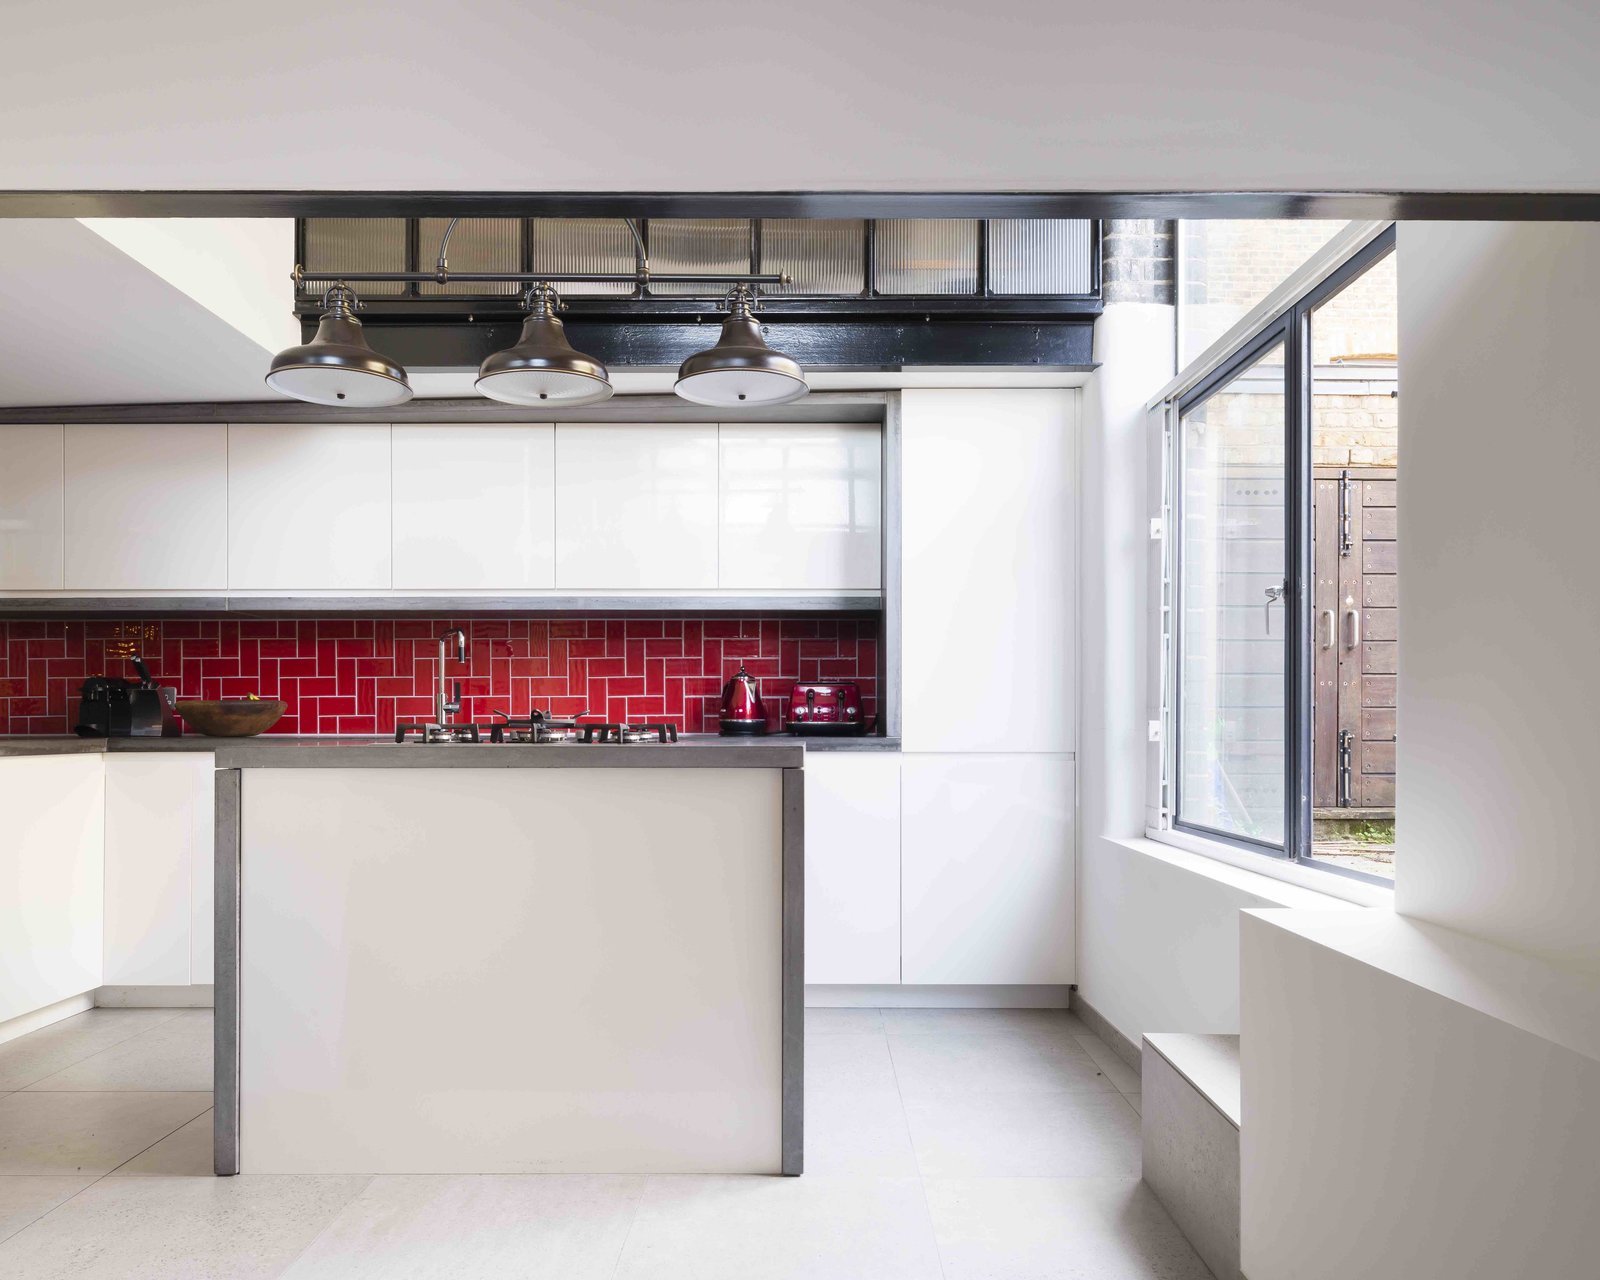 Kitchen, Concrete, White, Ceramic Tile, Subway Tile, Pendant, Refrigerator, Range, and Drop In  Best Kitchen Ceramic Tile Pendant Refrigerator Concrete Photos from An Old Grain Warehouse on the River Thames Is Transformed Into an Industrial-Modern Home